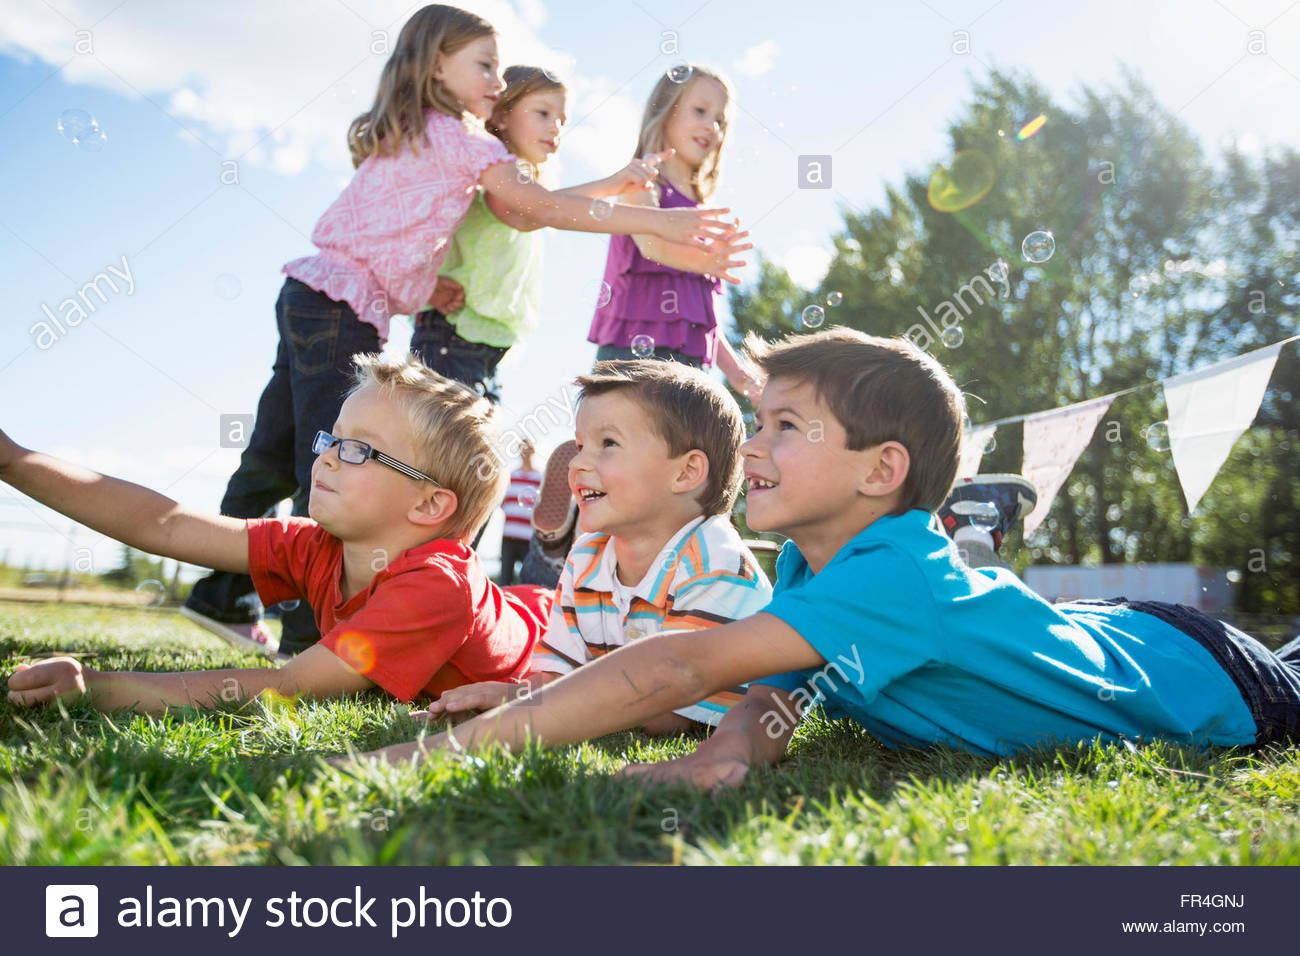 Kids chasing and catching bubbles outdoors. - Stock Image